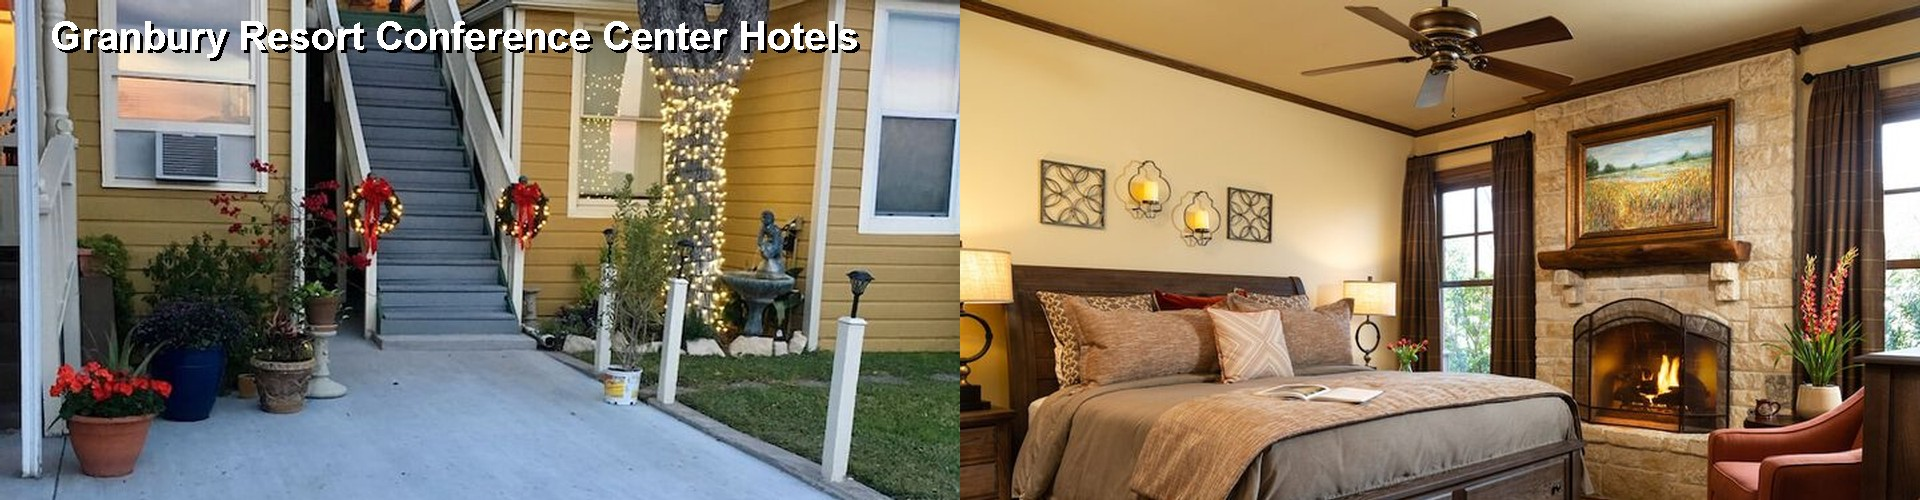 5 Best Hotels near Granbury Resort Conference Center